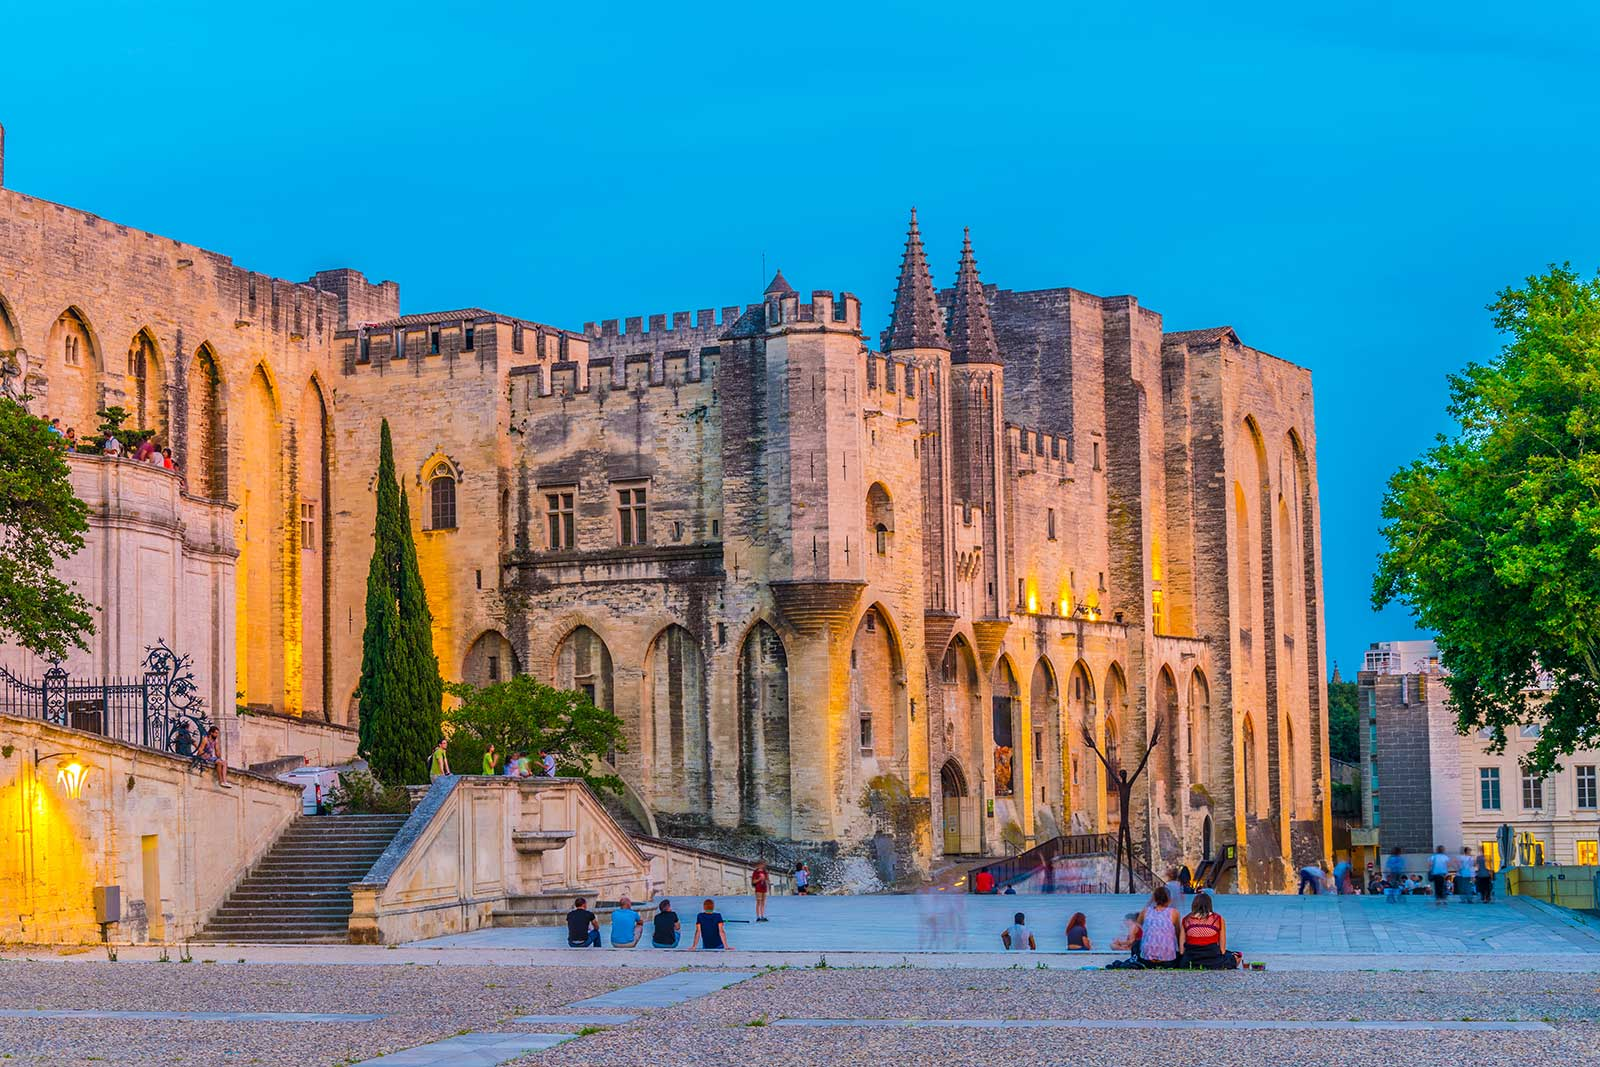 Palais des Papes in nearby Avignon is a remarkable reminder of the Avignon Papacy of 1309 to 1376.